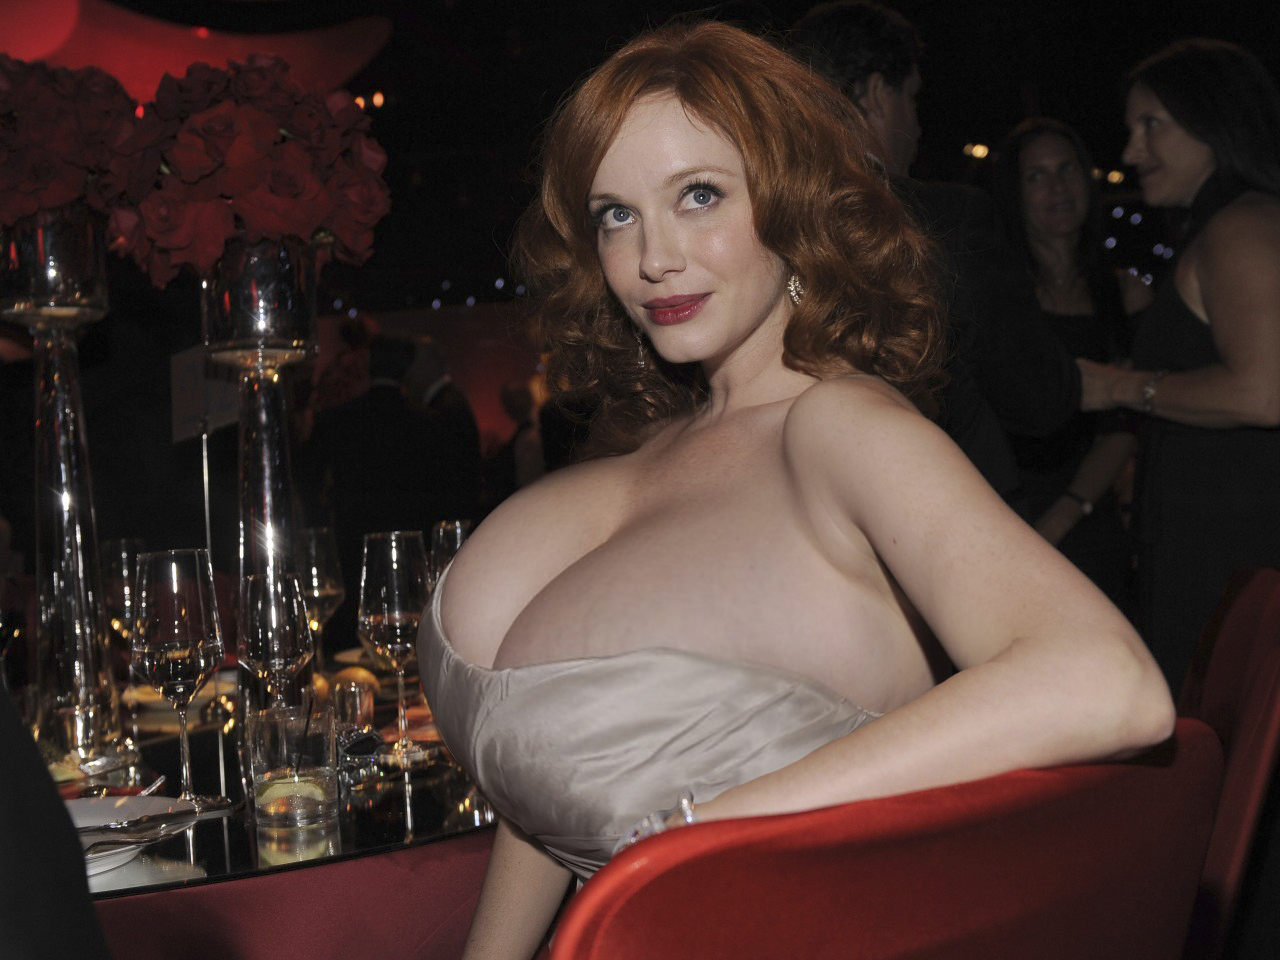 ChristinaHendricks1 - badmojo